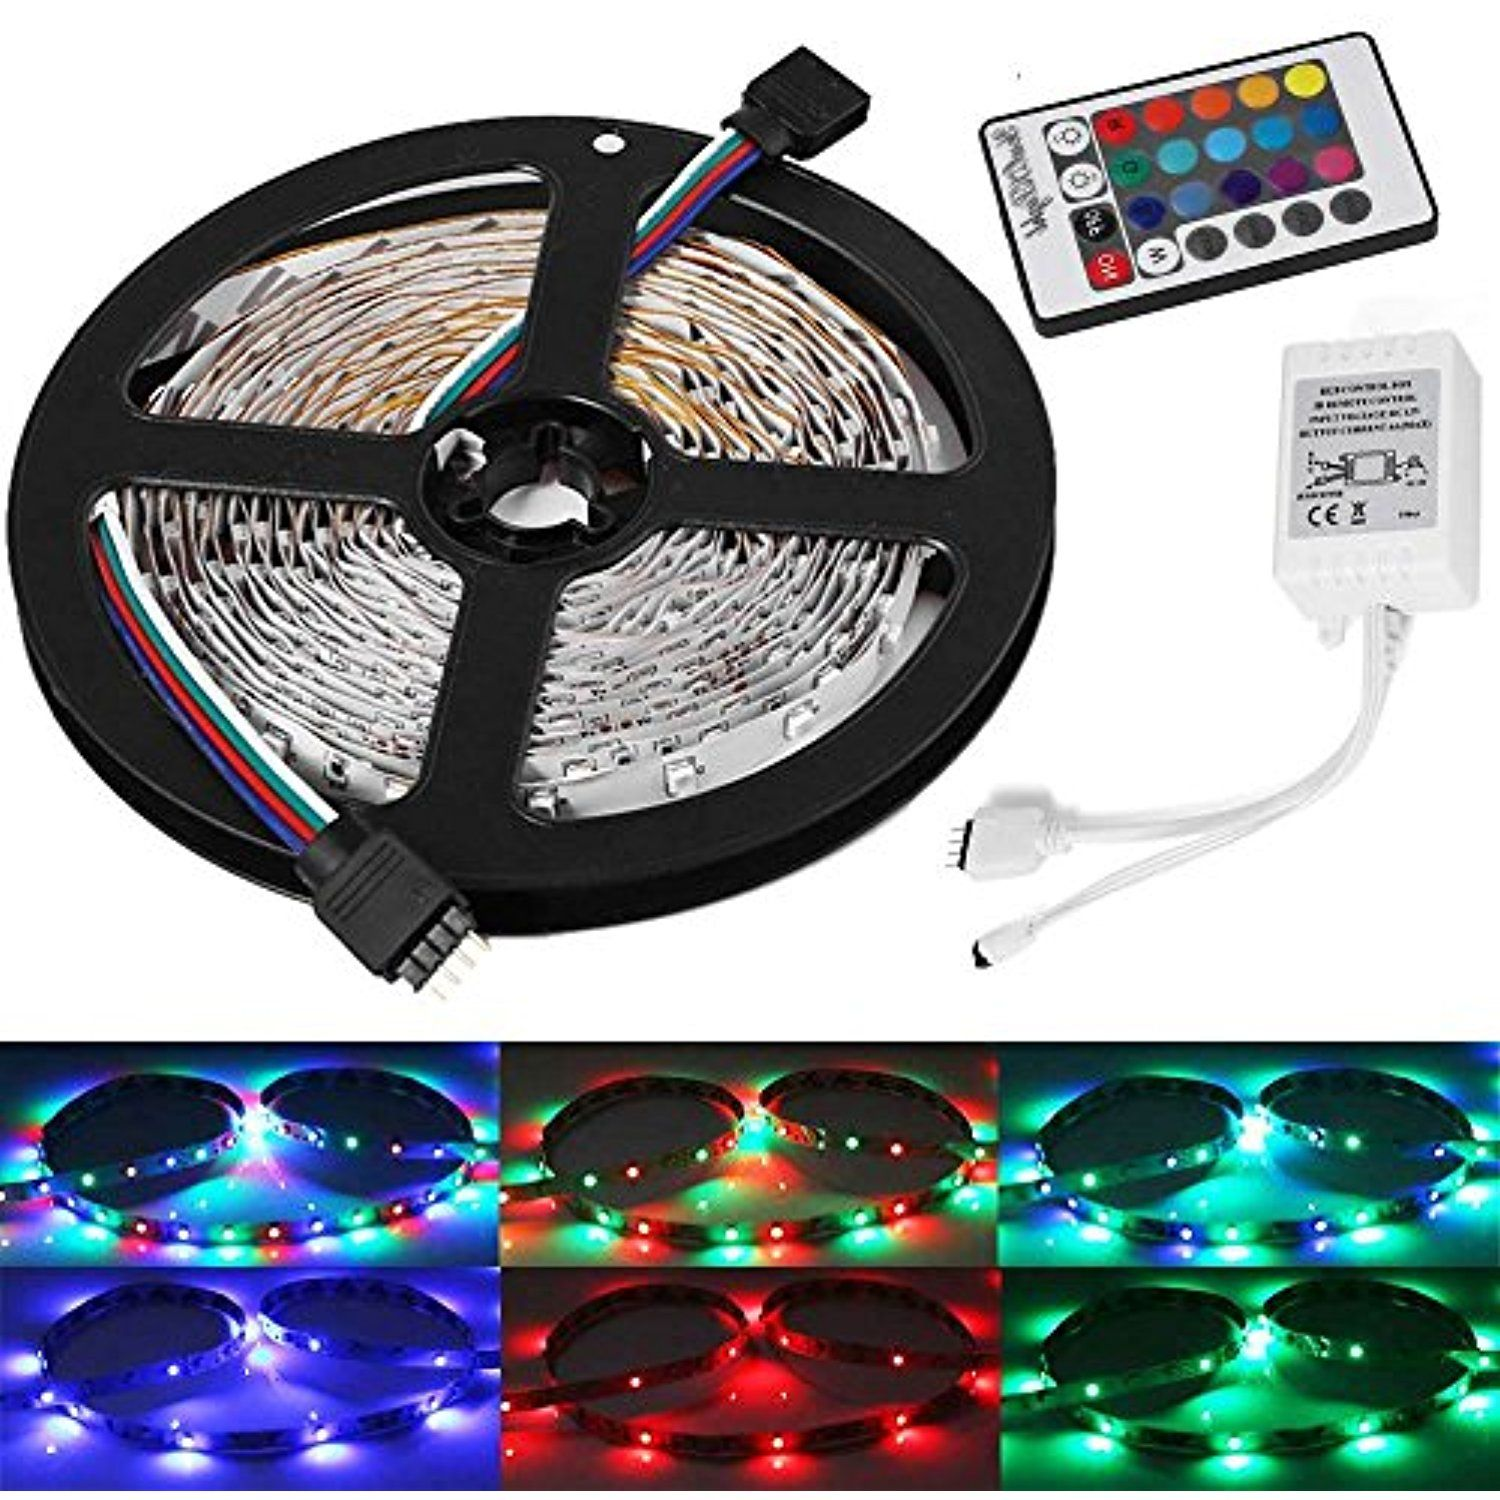 Led Light Strips With Remote Youoklight Yk0416 164Ft5M Flexible Rgb Led Light Strips With 24Key